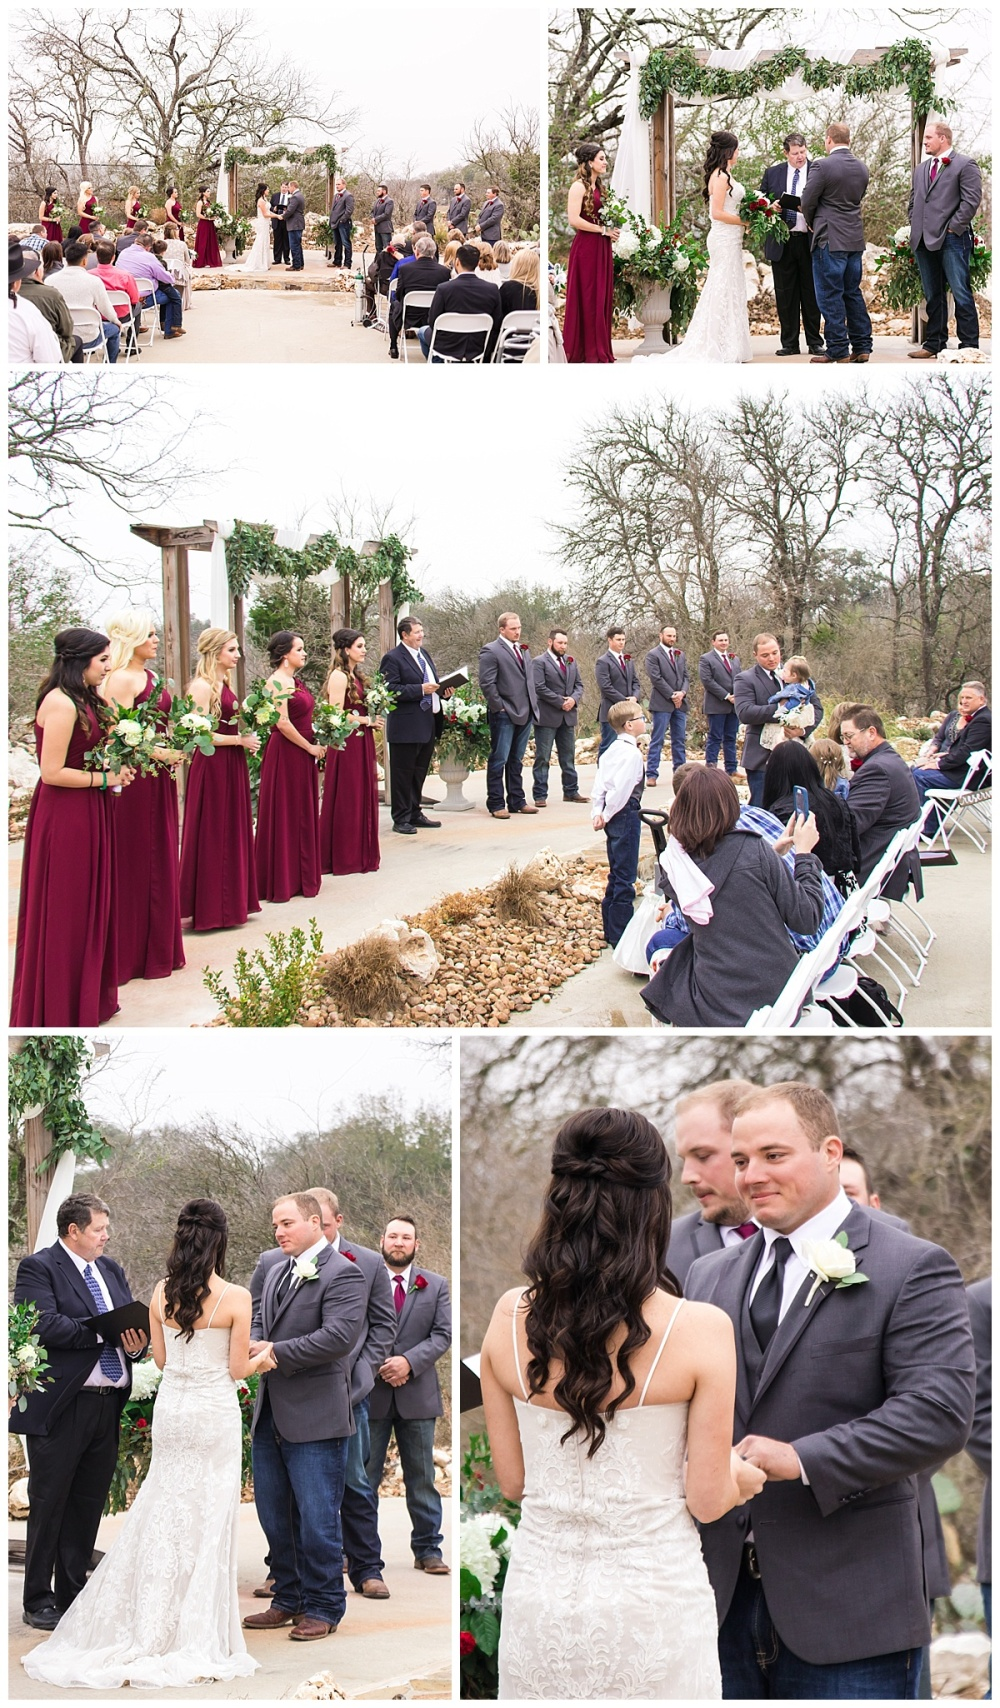 Carly-Barton-Photography-Geronimo-Oaks-Wedding-Venue-Texas-Hill-Country-Ronnie-Sarah_0097.jpg